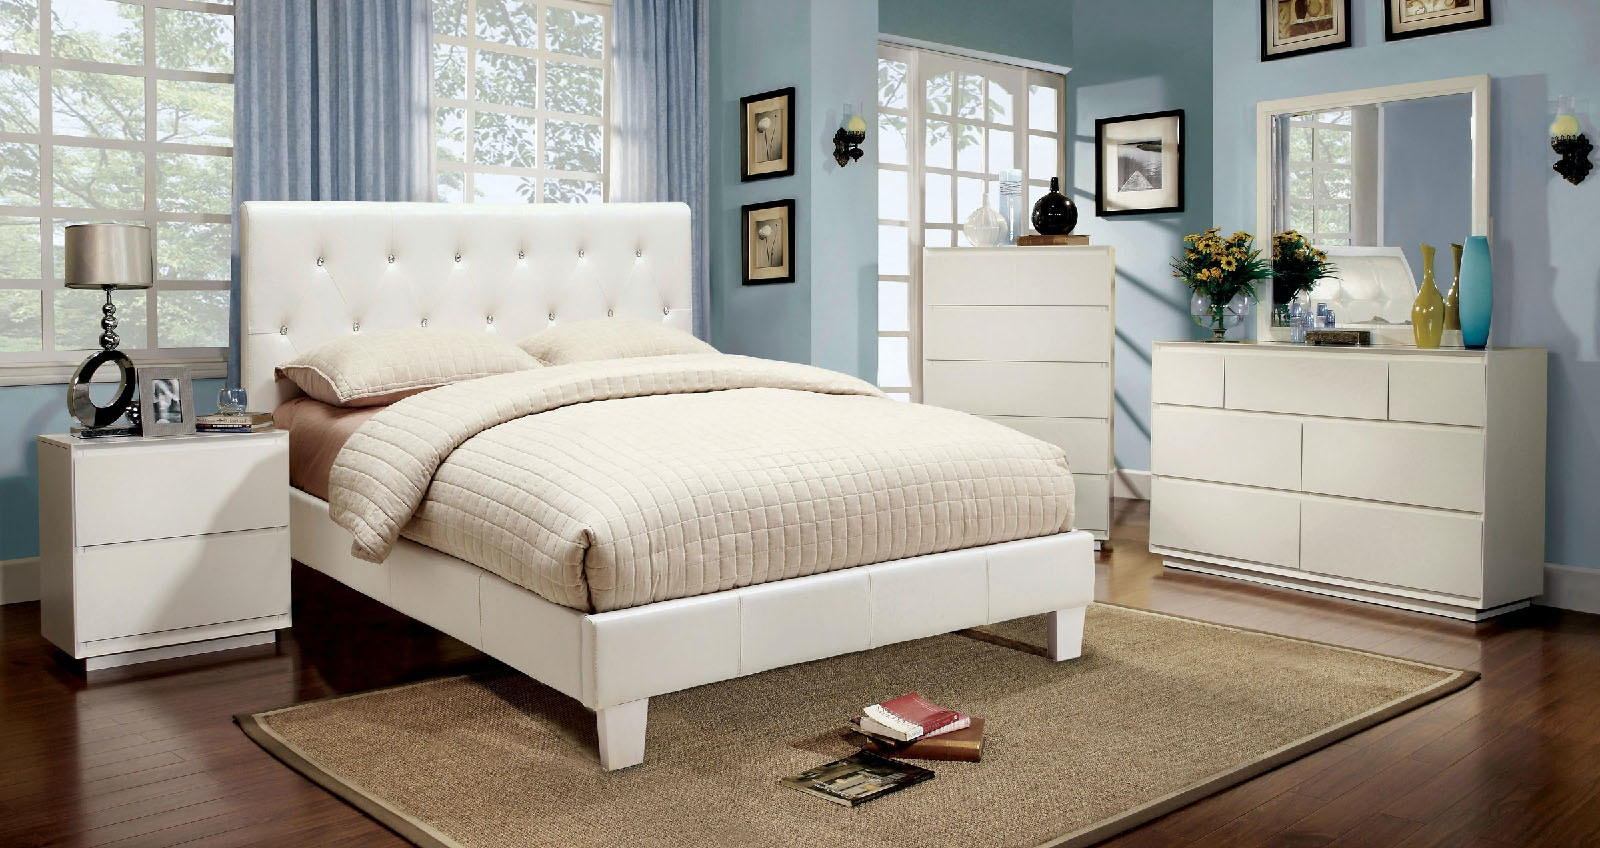 Furniture Of America Bedroom Twin Bed, White CM7949WH T BED At The Furniture  Mall